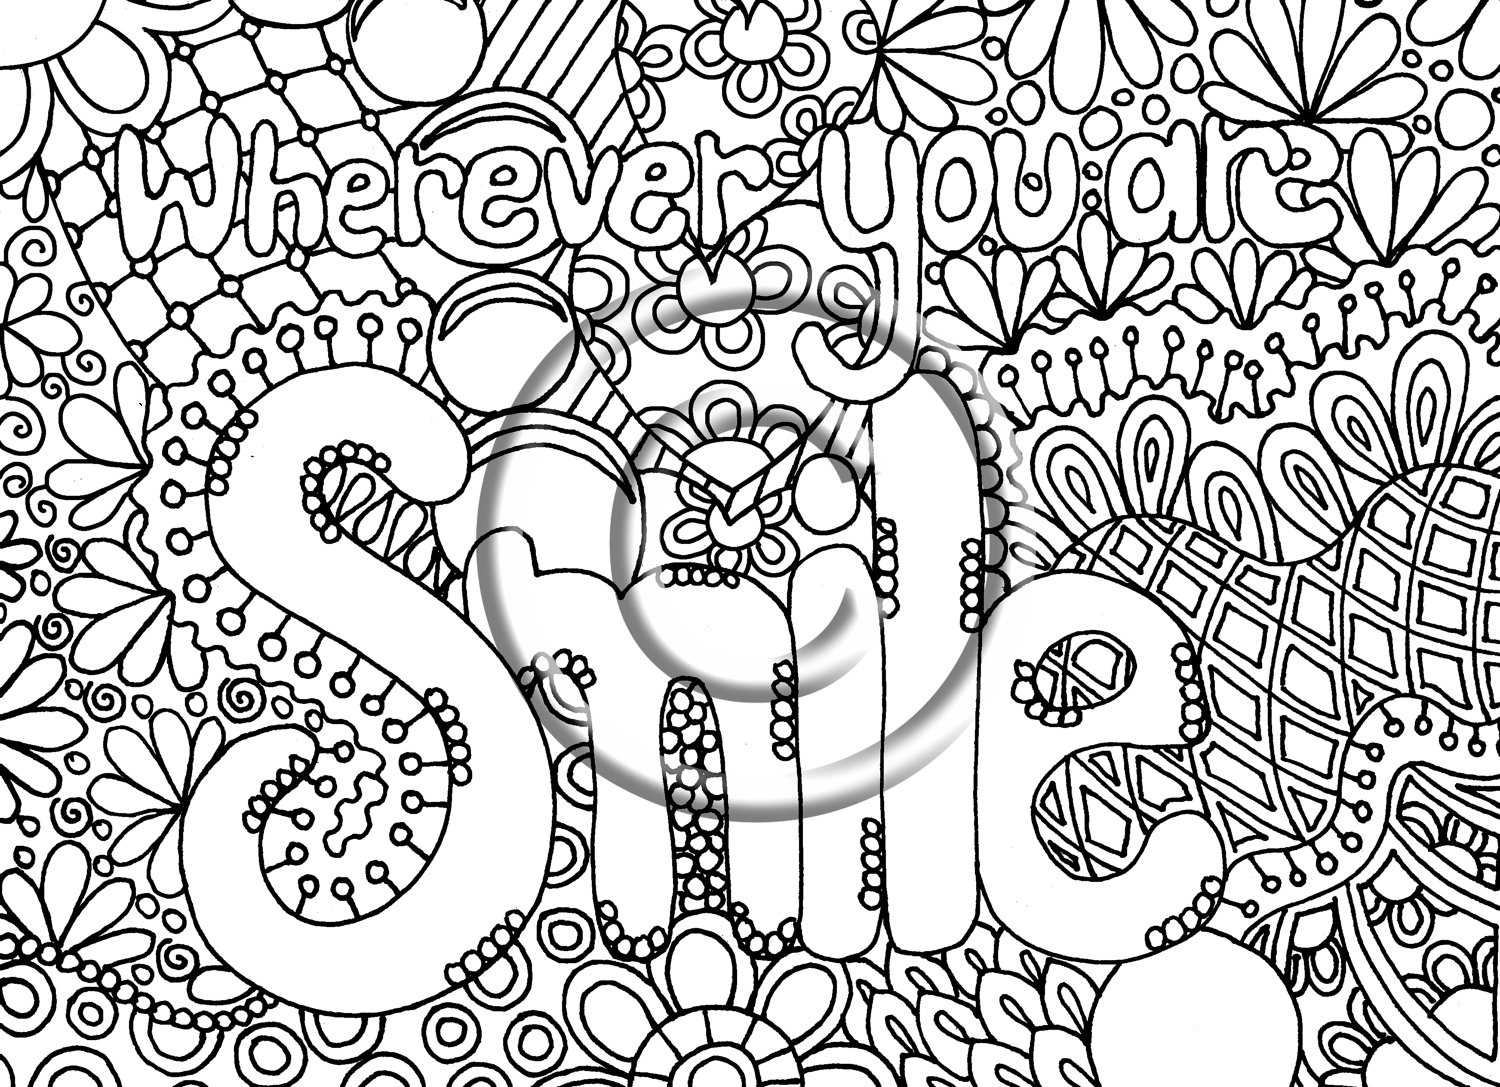 Abstract coloring #9, Download drawings